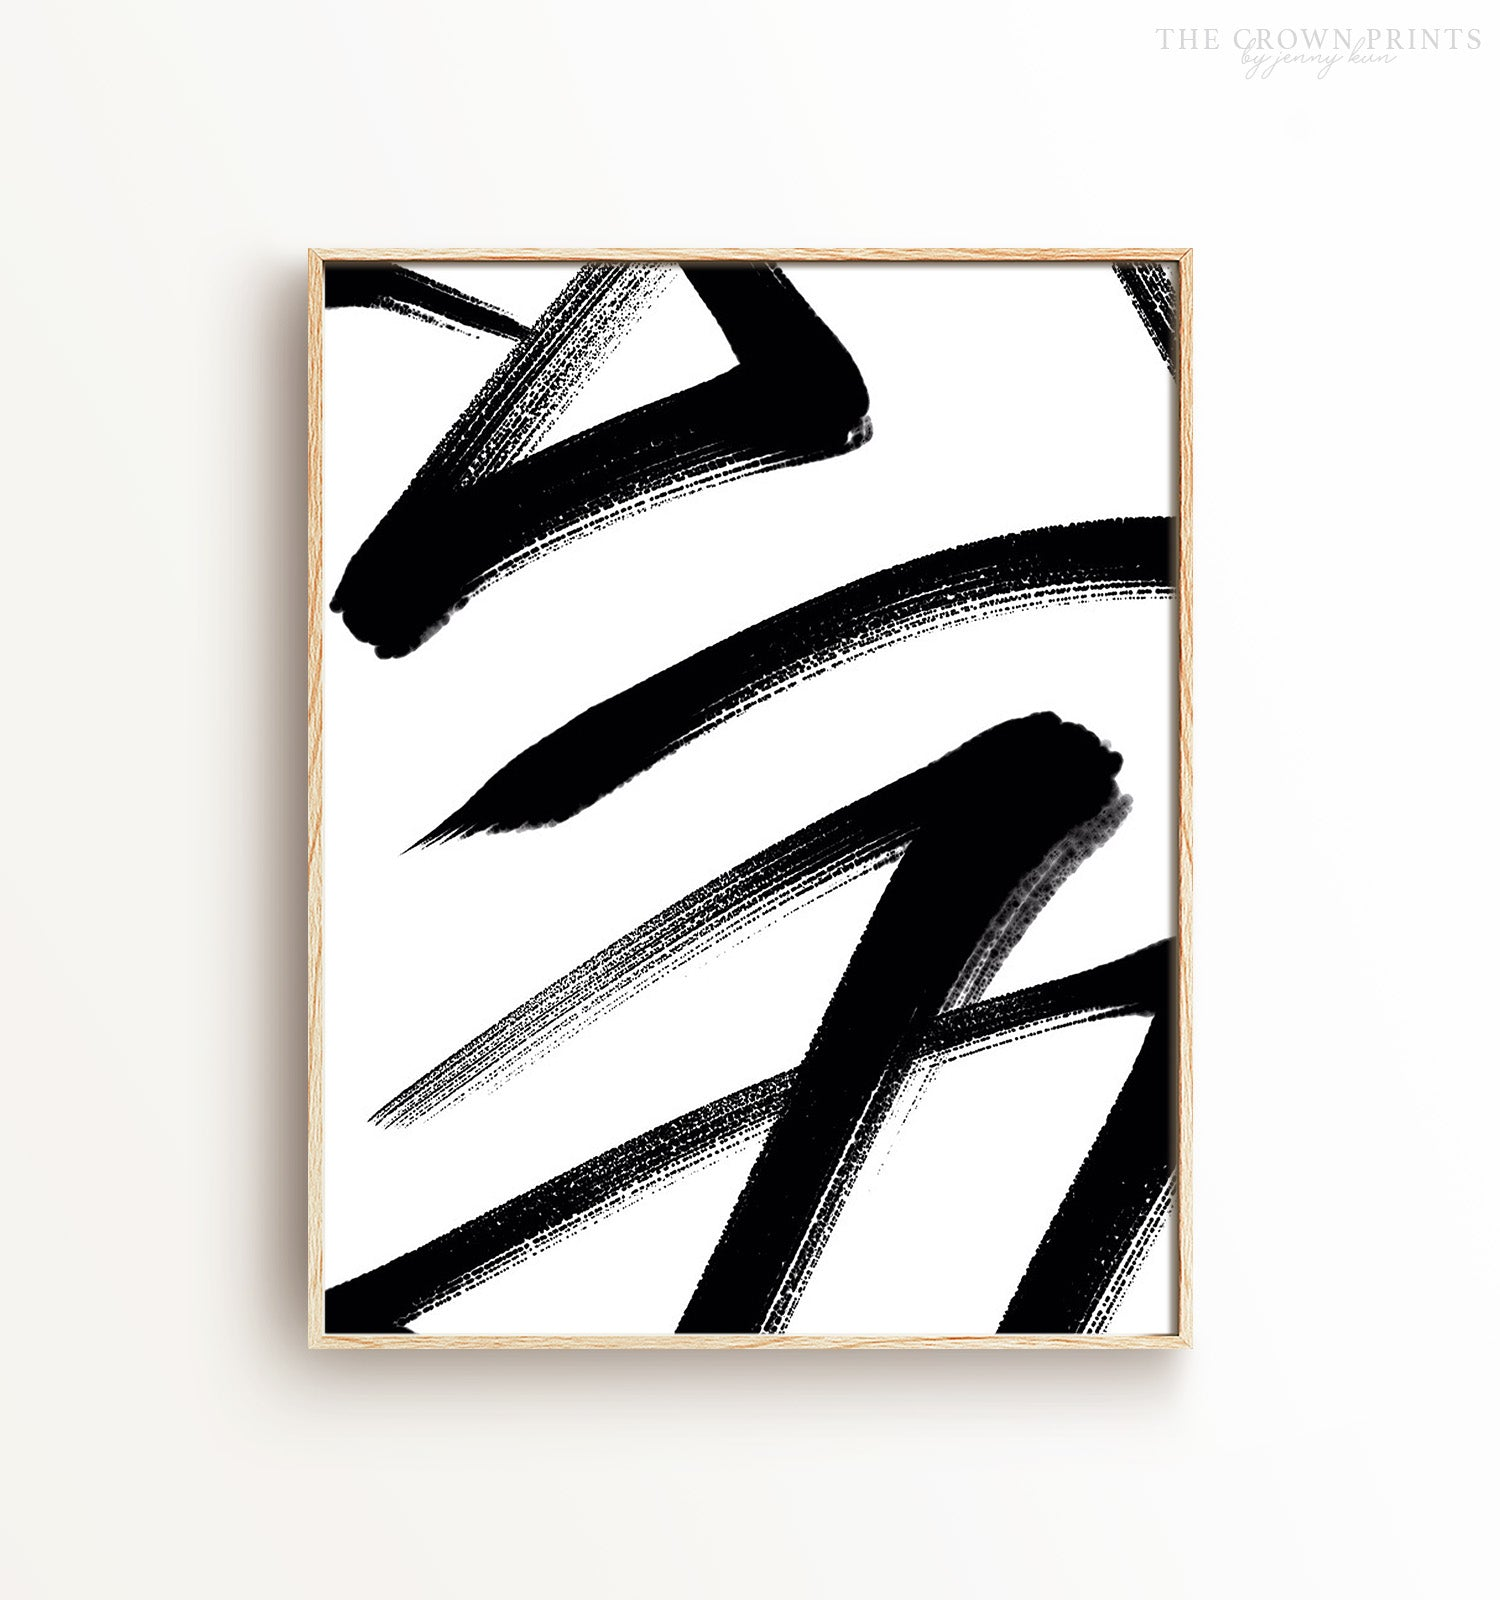 Abstract Black & White Brushstrokes - The Crown Prints